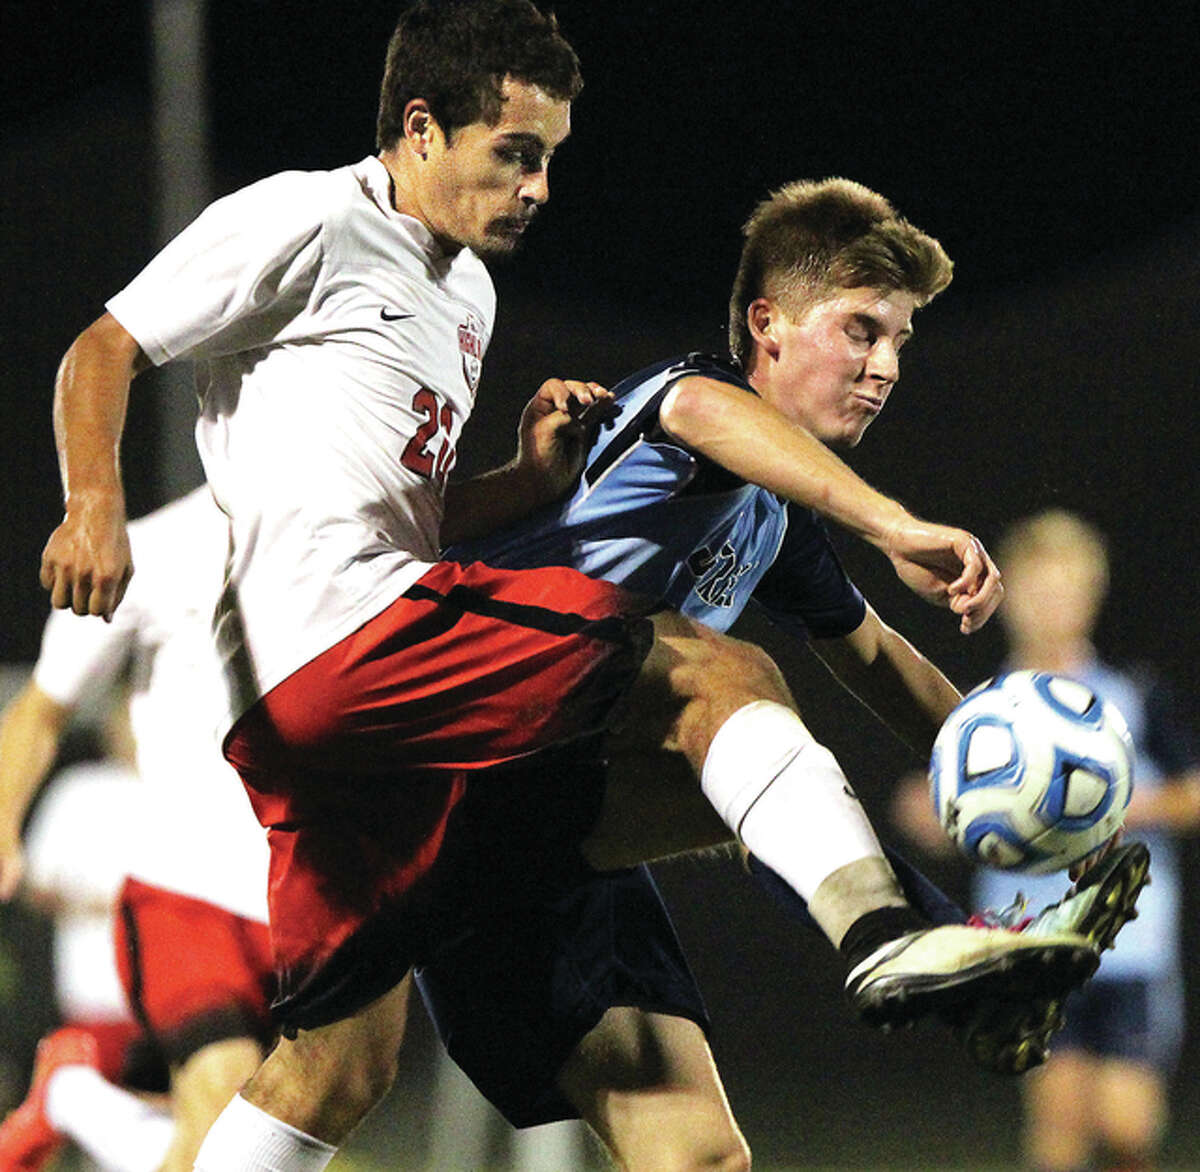 Highland's Evan Herman (left) battles Jersey's Gavin McGuire for control of the ball during the semifinals of the Jacksonville Class 2A Regional Tuesday night at Alumni Field in Jacksonville.